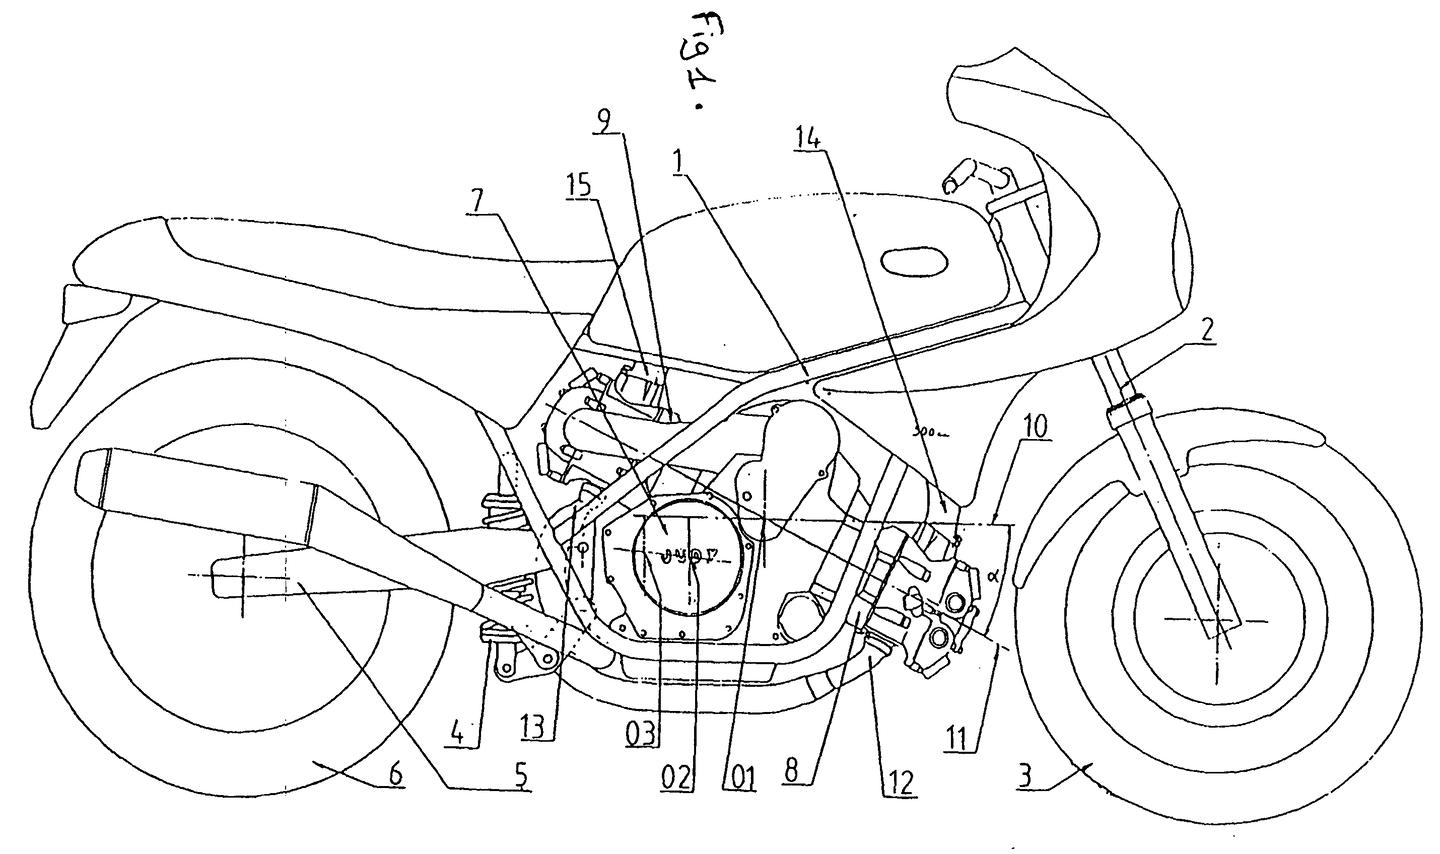 Drawing of the Midual from the company's patent applications